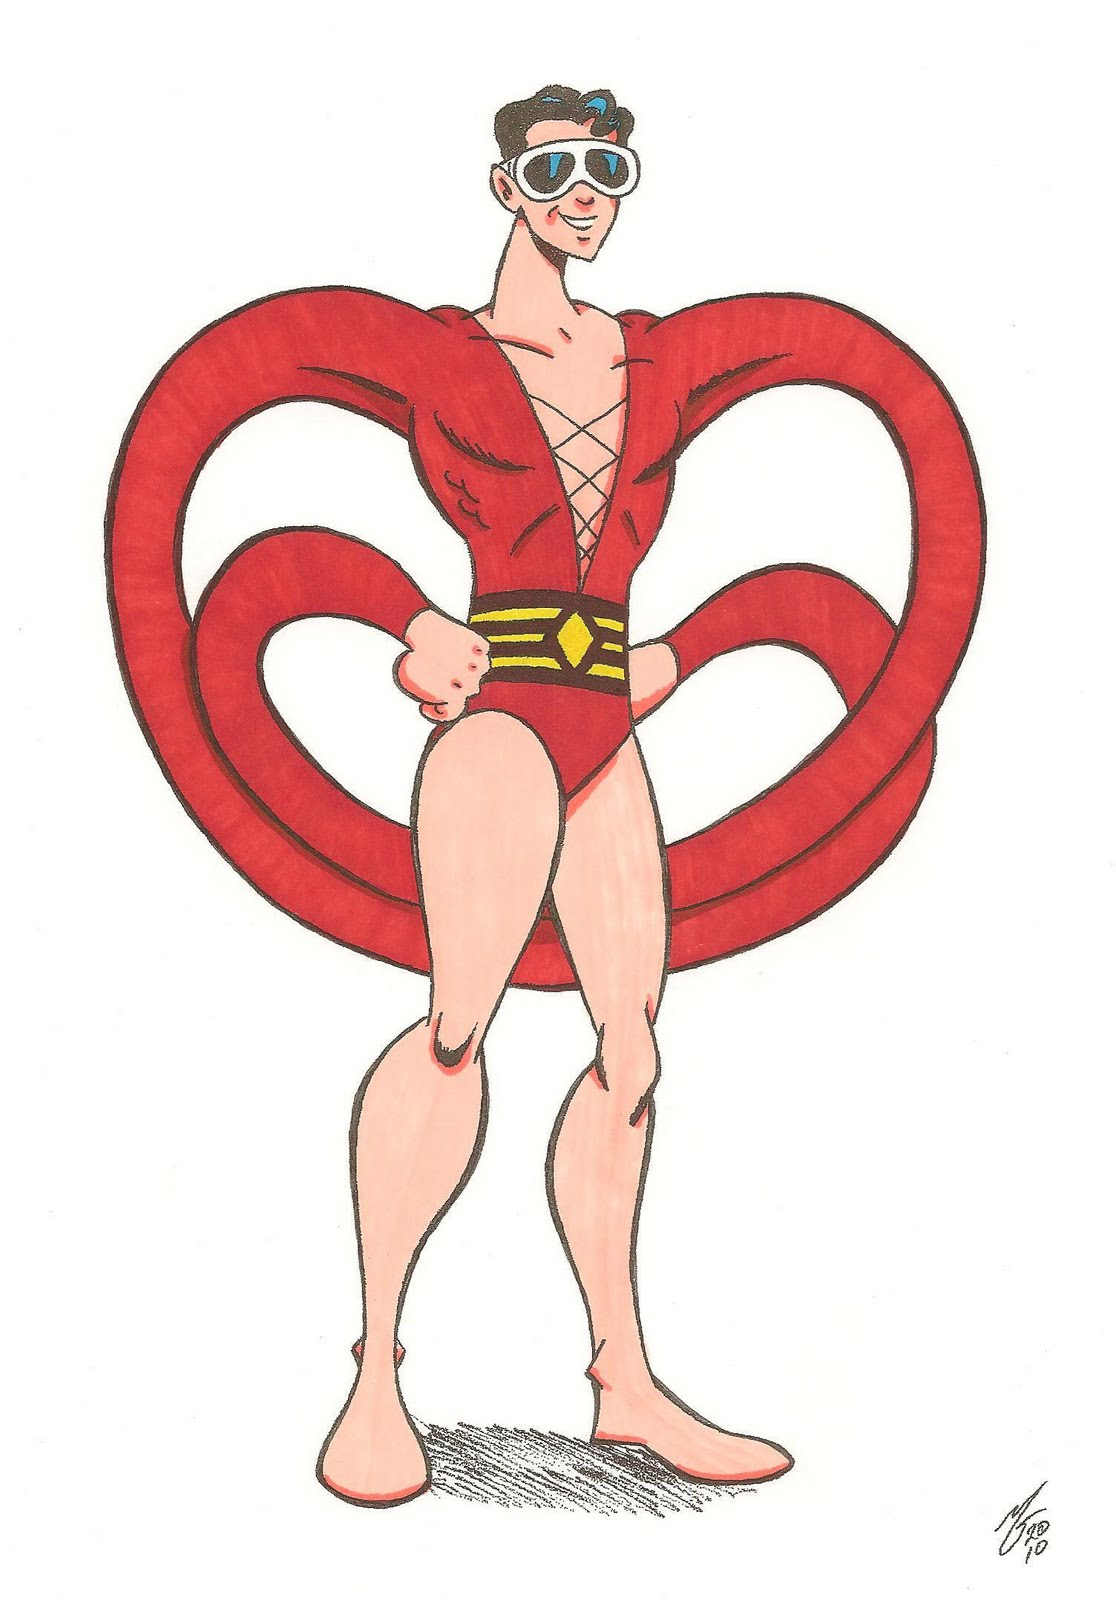 Plastic Man screenshots, images and pictures.